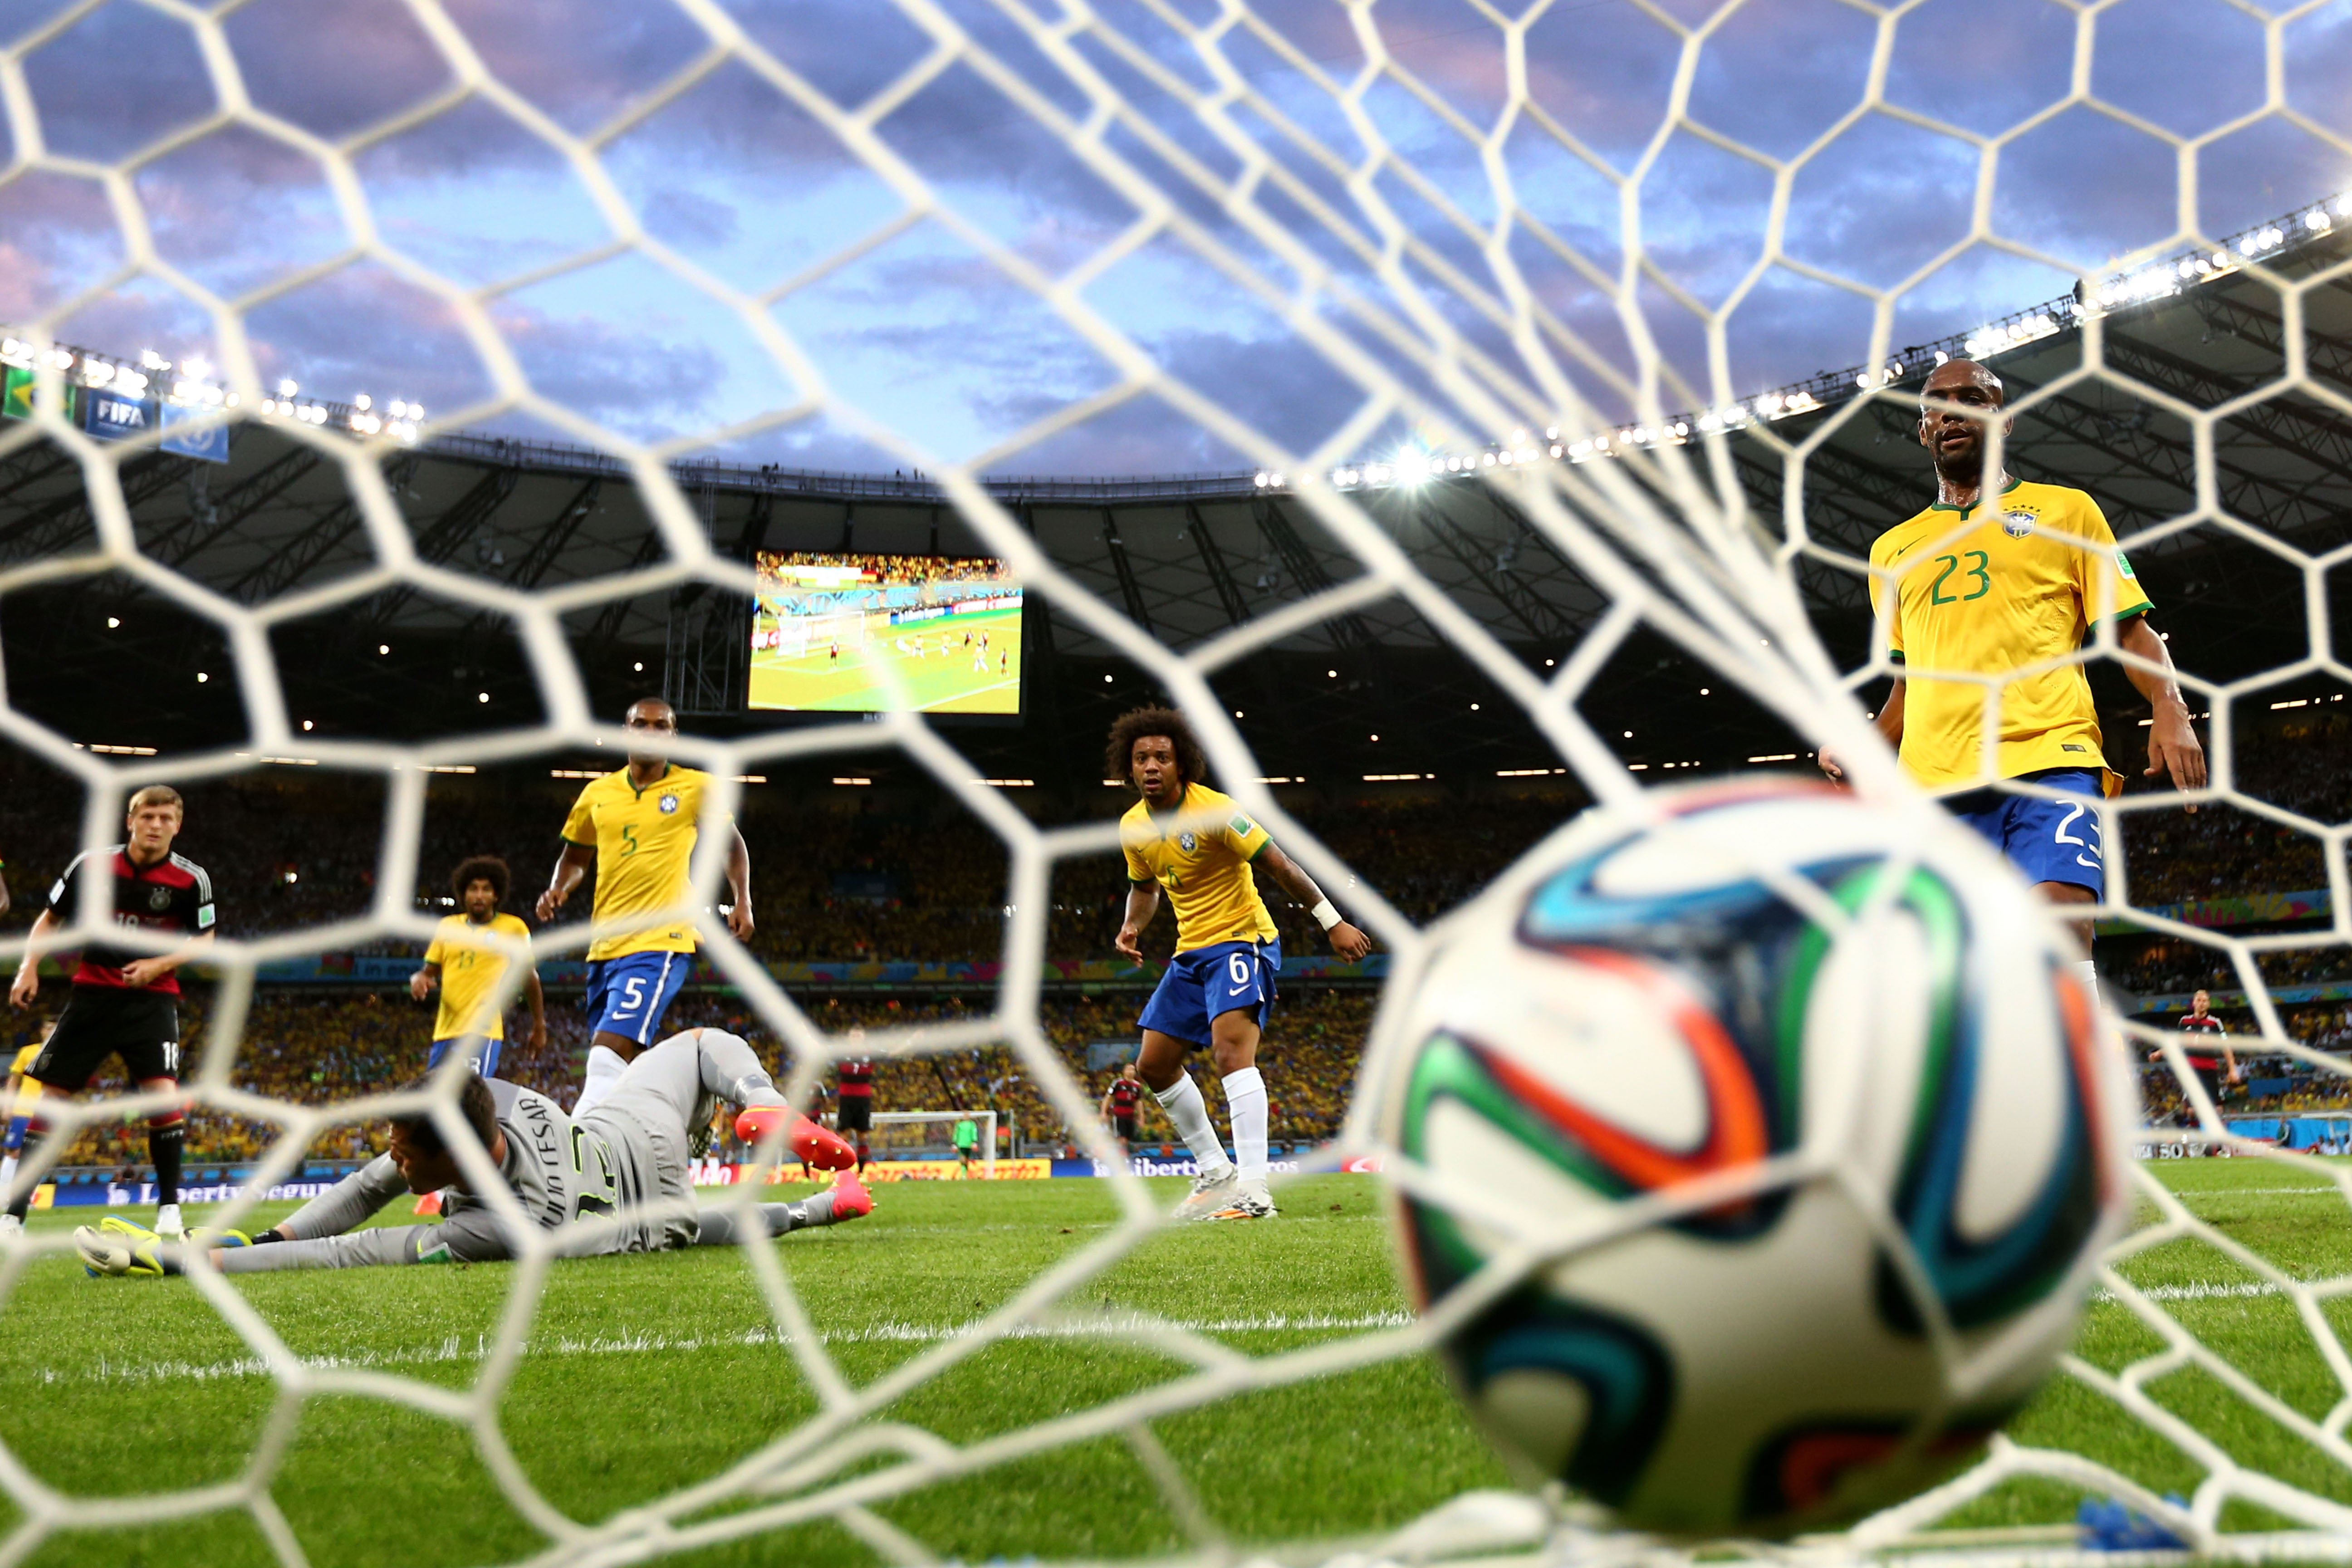 Miroslav Klose of Germany scores his team's second goal past Julio Cesar of Brazil during the 2014 FIFA World Cup Brazil Semi Final match between Brazil and Germany at Estadio Mineirao on July 8, 2014 in Belo Horizonte, Brazil.